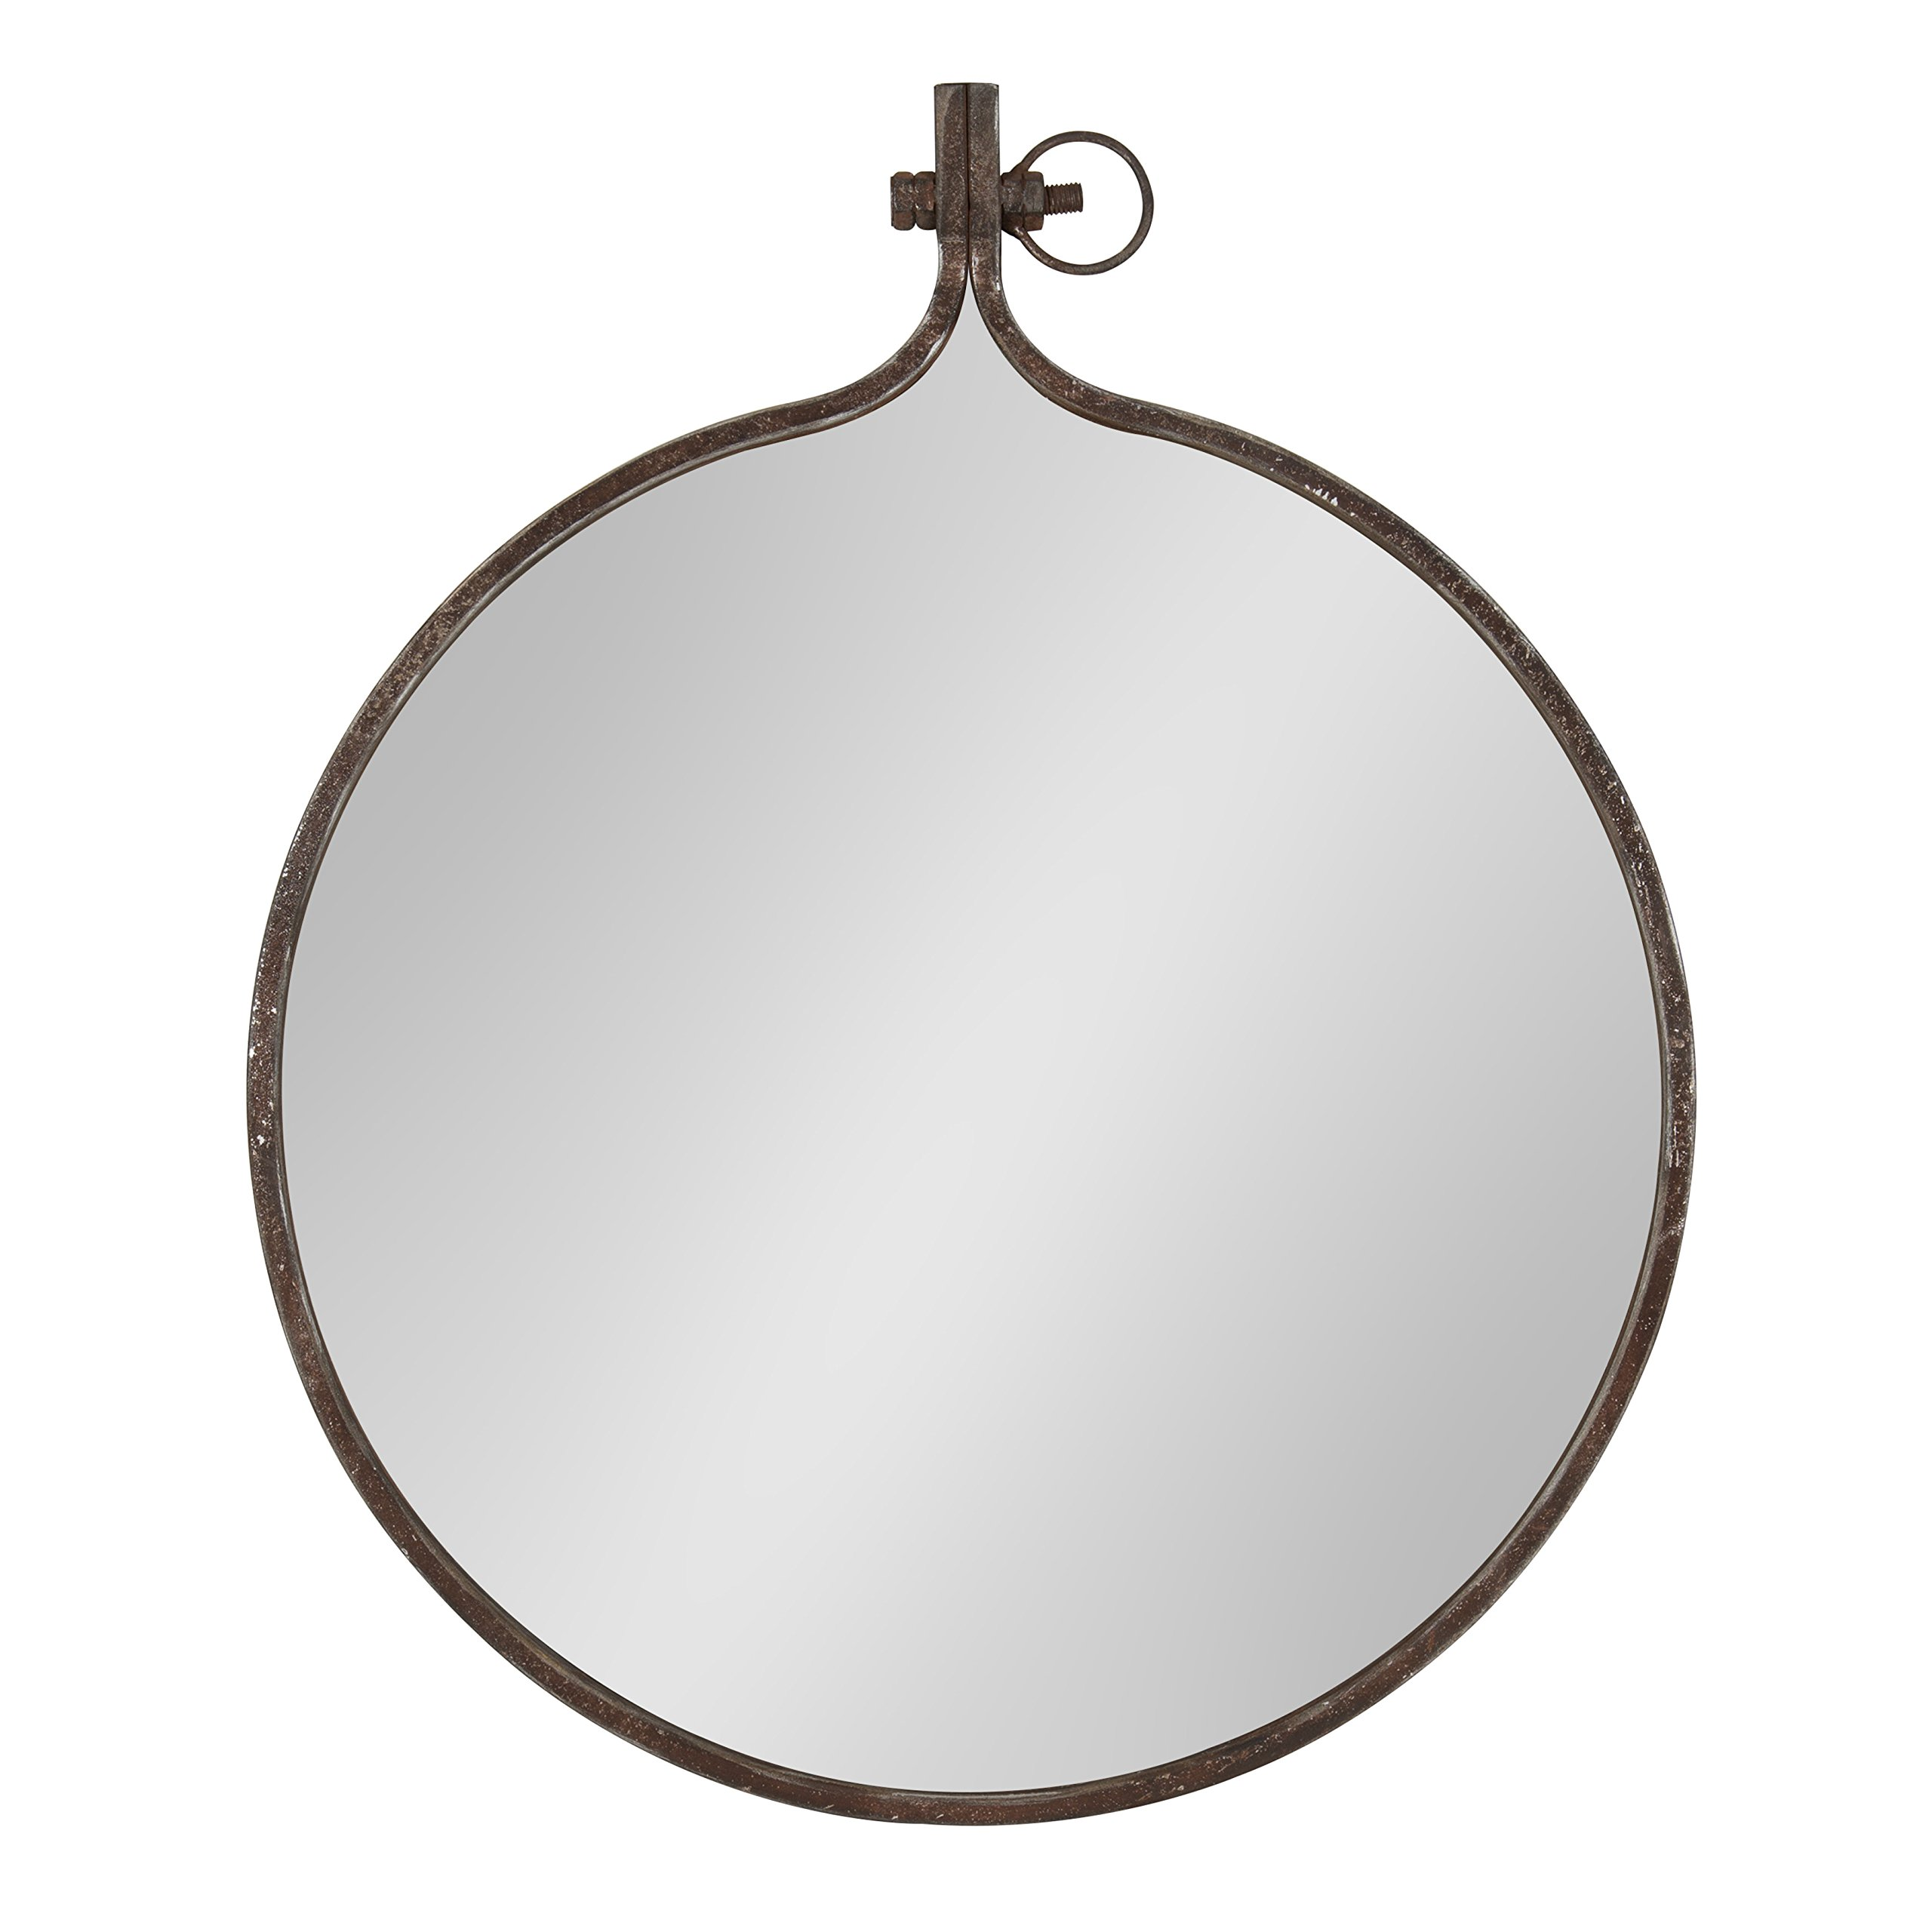 Kate and Laurel Yitro Round Industrial Rustic Metal Framed Wall Mirror, 23.5'' Diameter, Bronze by Kate and Laurel